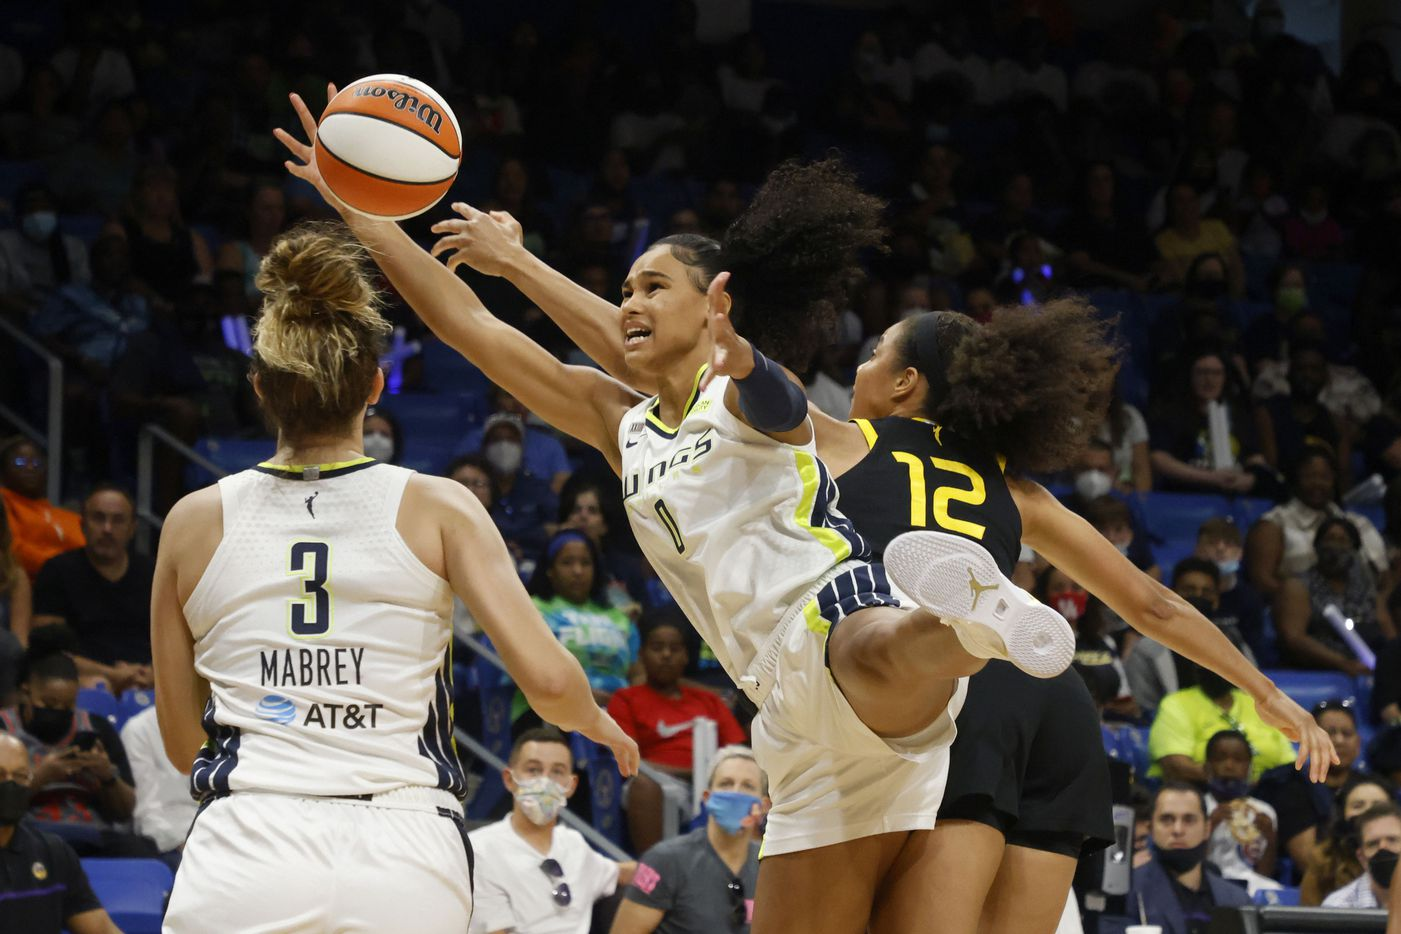 Dallas Wings forward Satou Sabally (0) grabs the ball in front of Los Angeles Sparks forward Nia Coffey (12) as Dallas Wings guard Marina Mabrey (3) looks on, during the first half of a WNBA basketball game in Arlington, Texas on Sunday, Sept. 19, 2021. (Michael Ainsworth/Special Contributor)